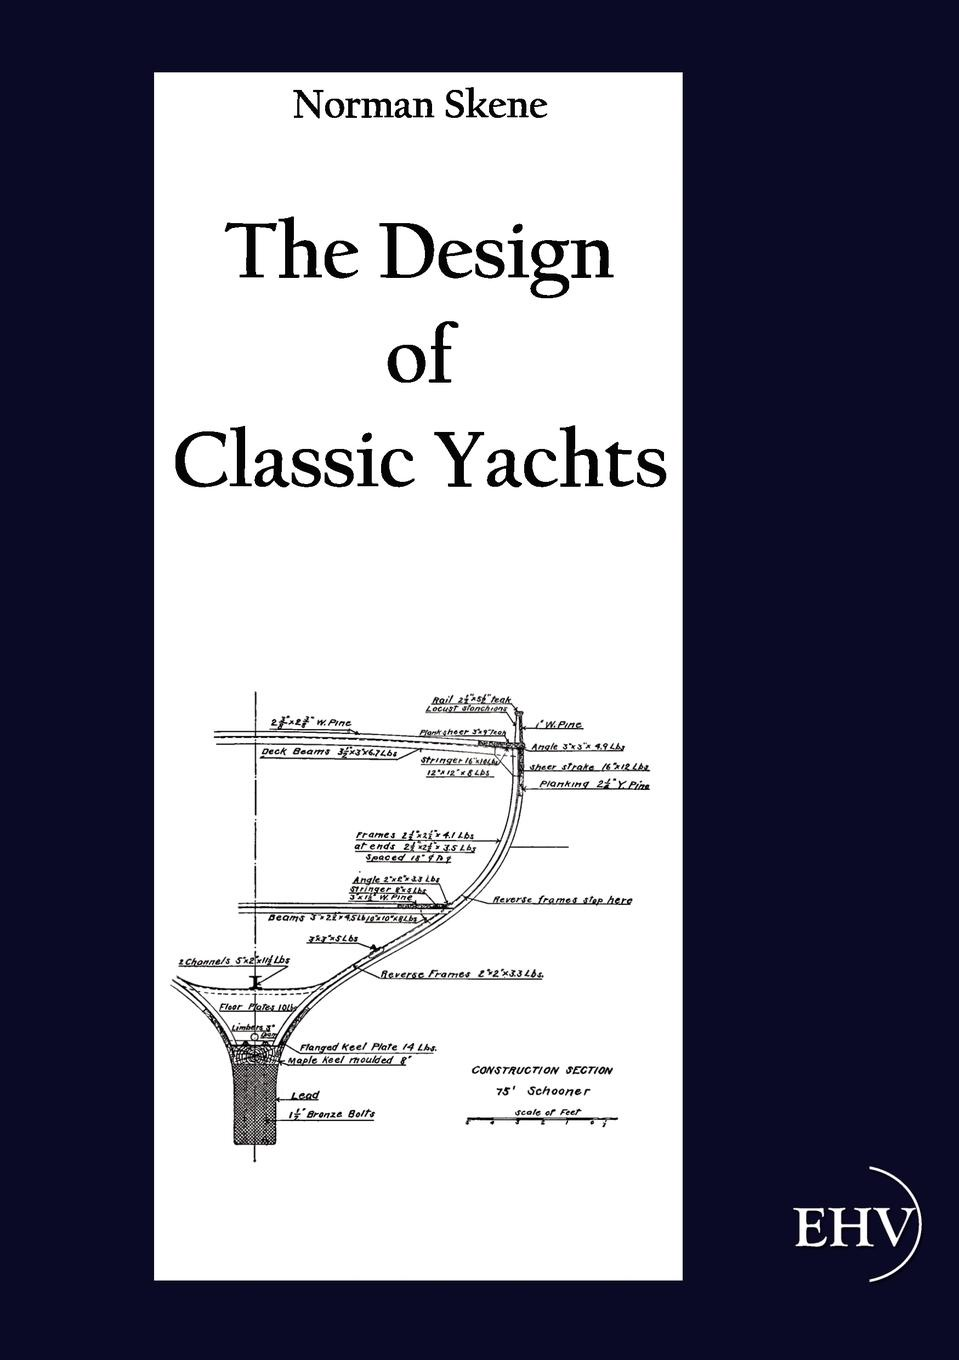 Norman Skene The Design of Classic Yachts